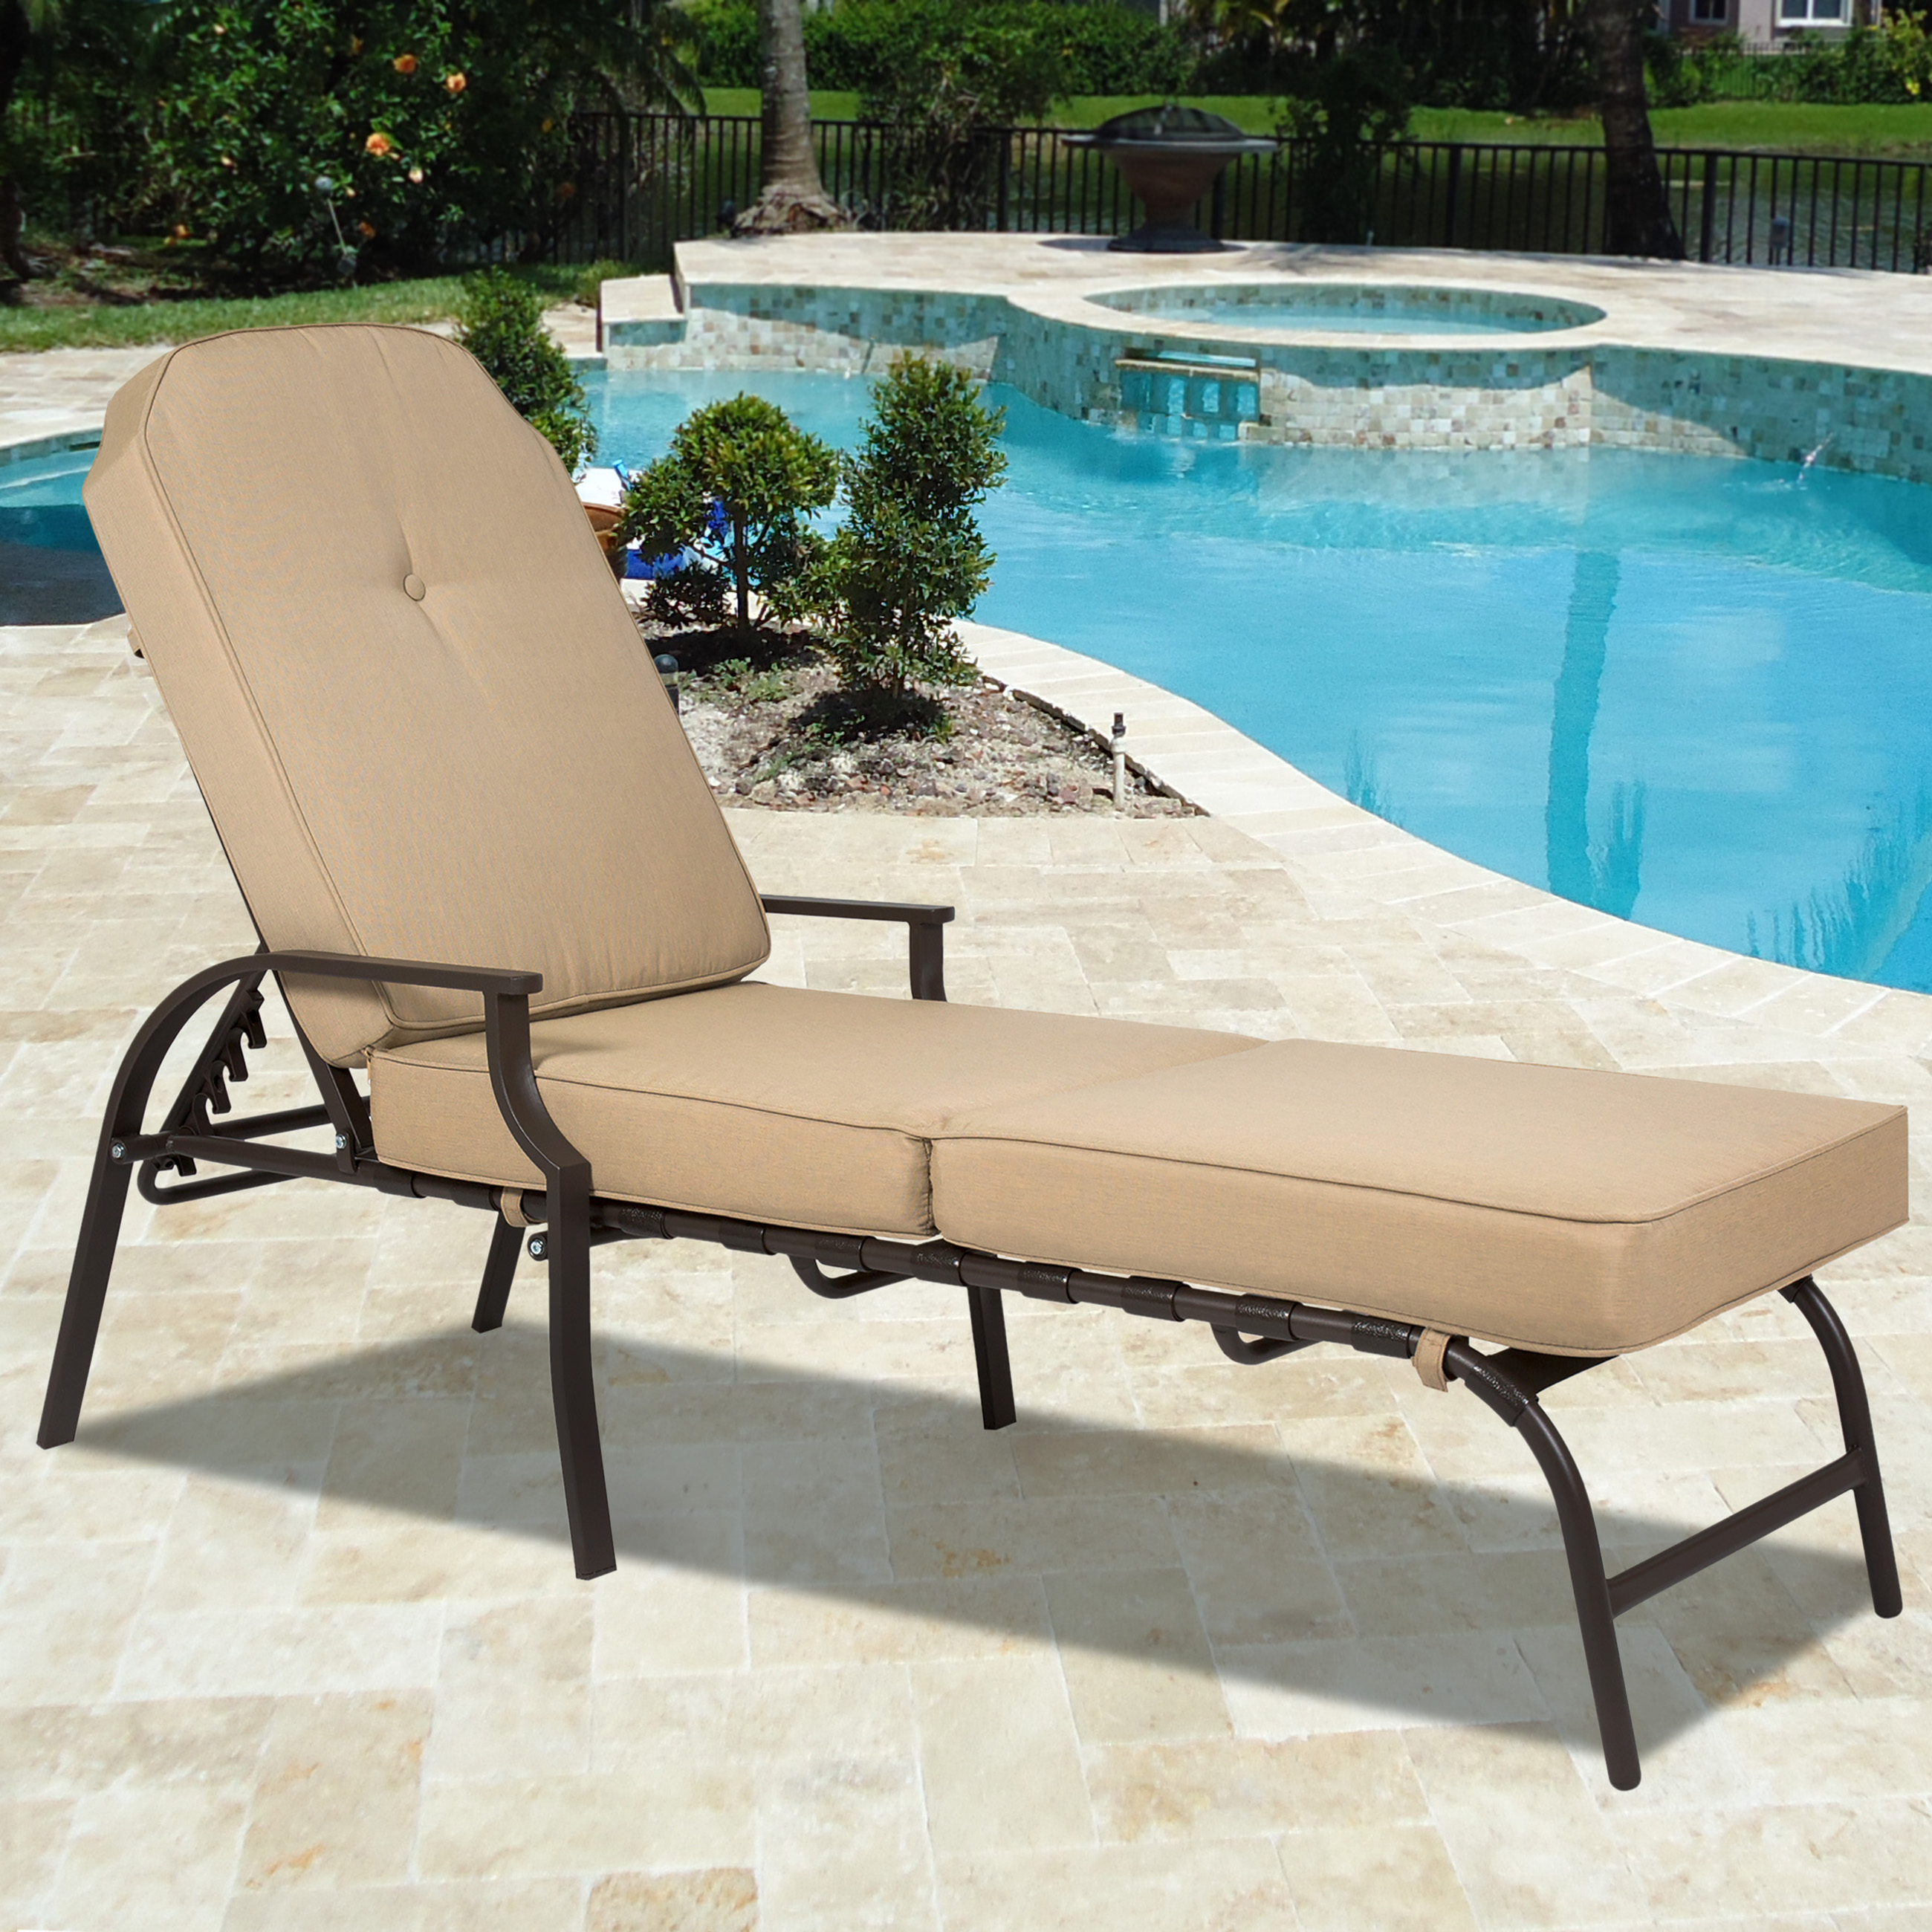 Superb Best Choice Products Outdoor Chaise Lounge Chair W/ Cushion Pool Patio  Furniture   Walmart.com